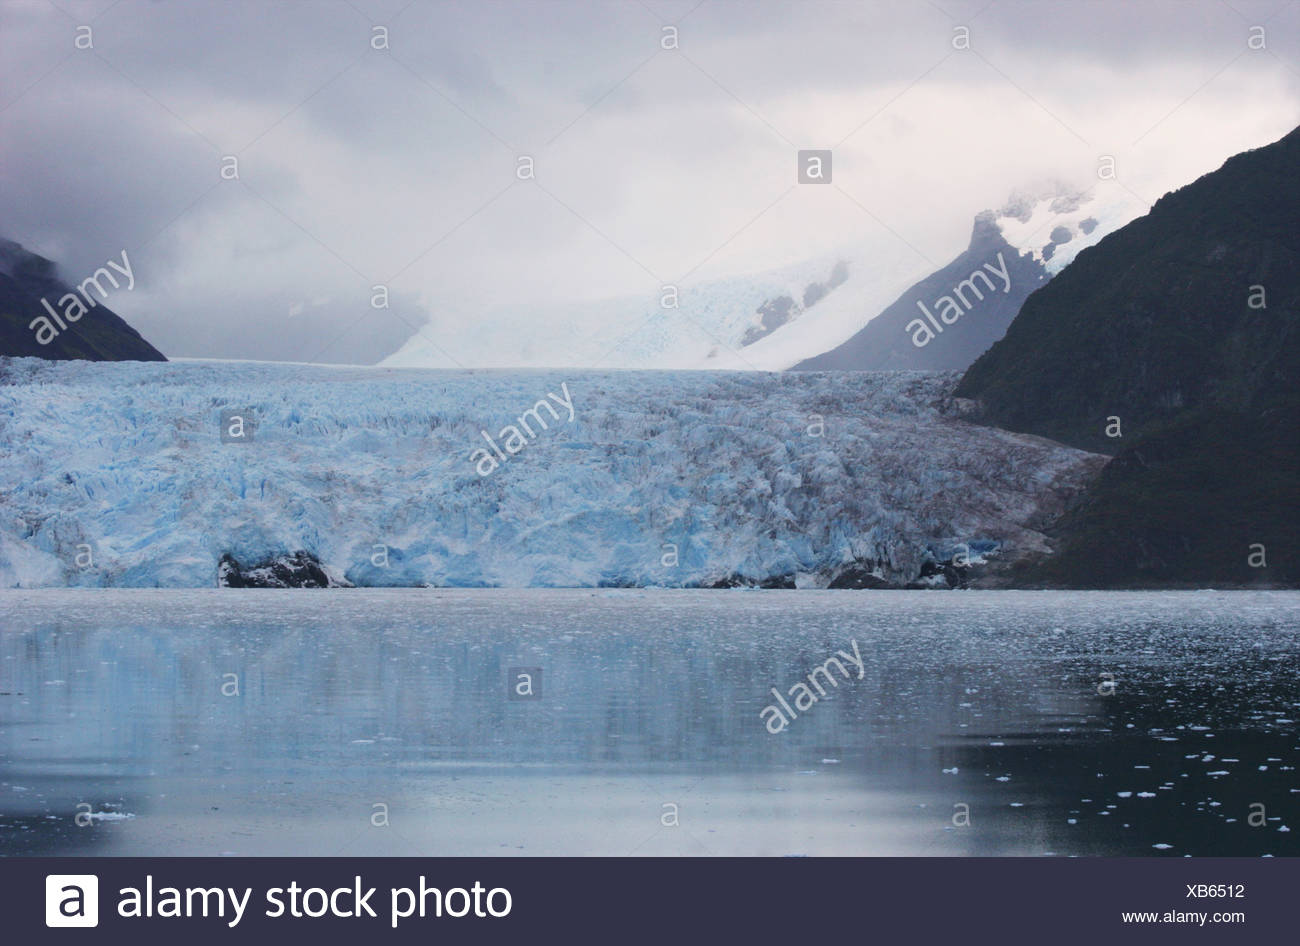 Reflection of a glacier in water, Amalia Glacier, Bernardo O'Higgins National Park, Patagonia, Chile - Stock Image